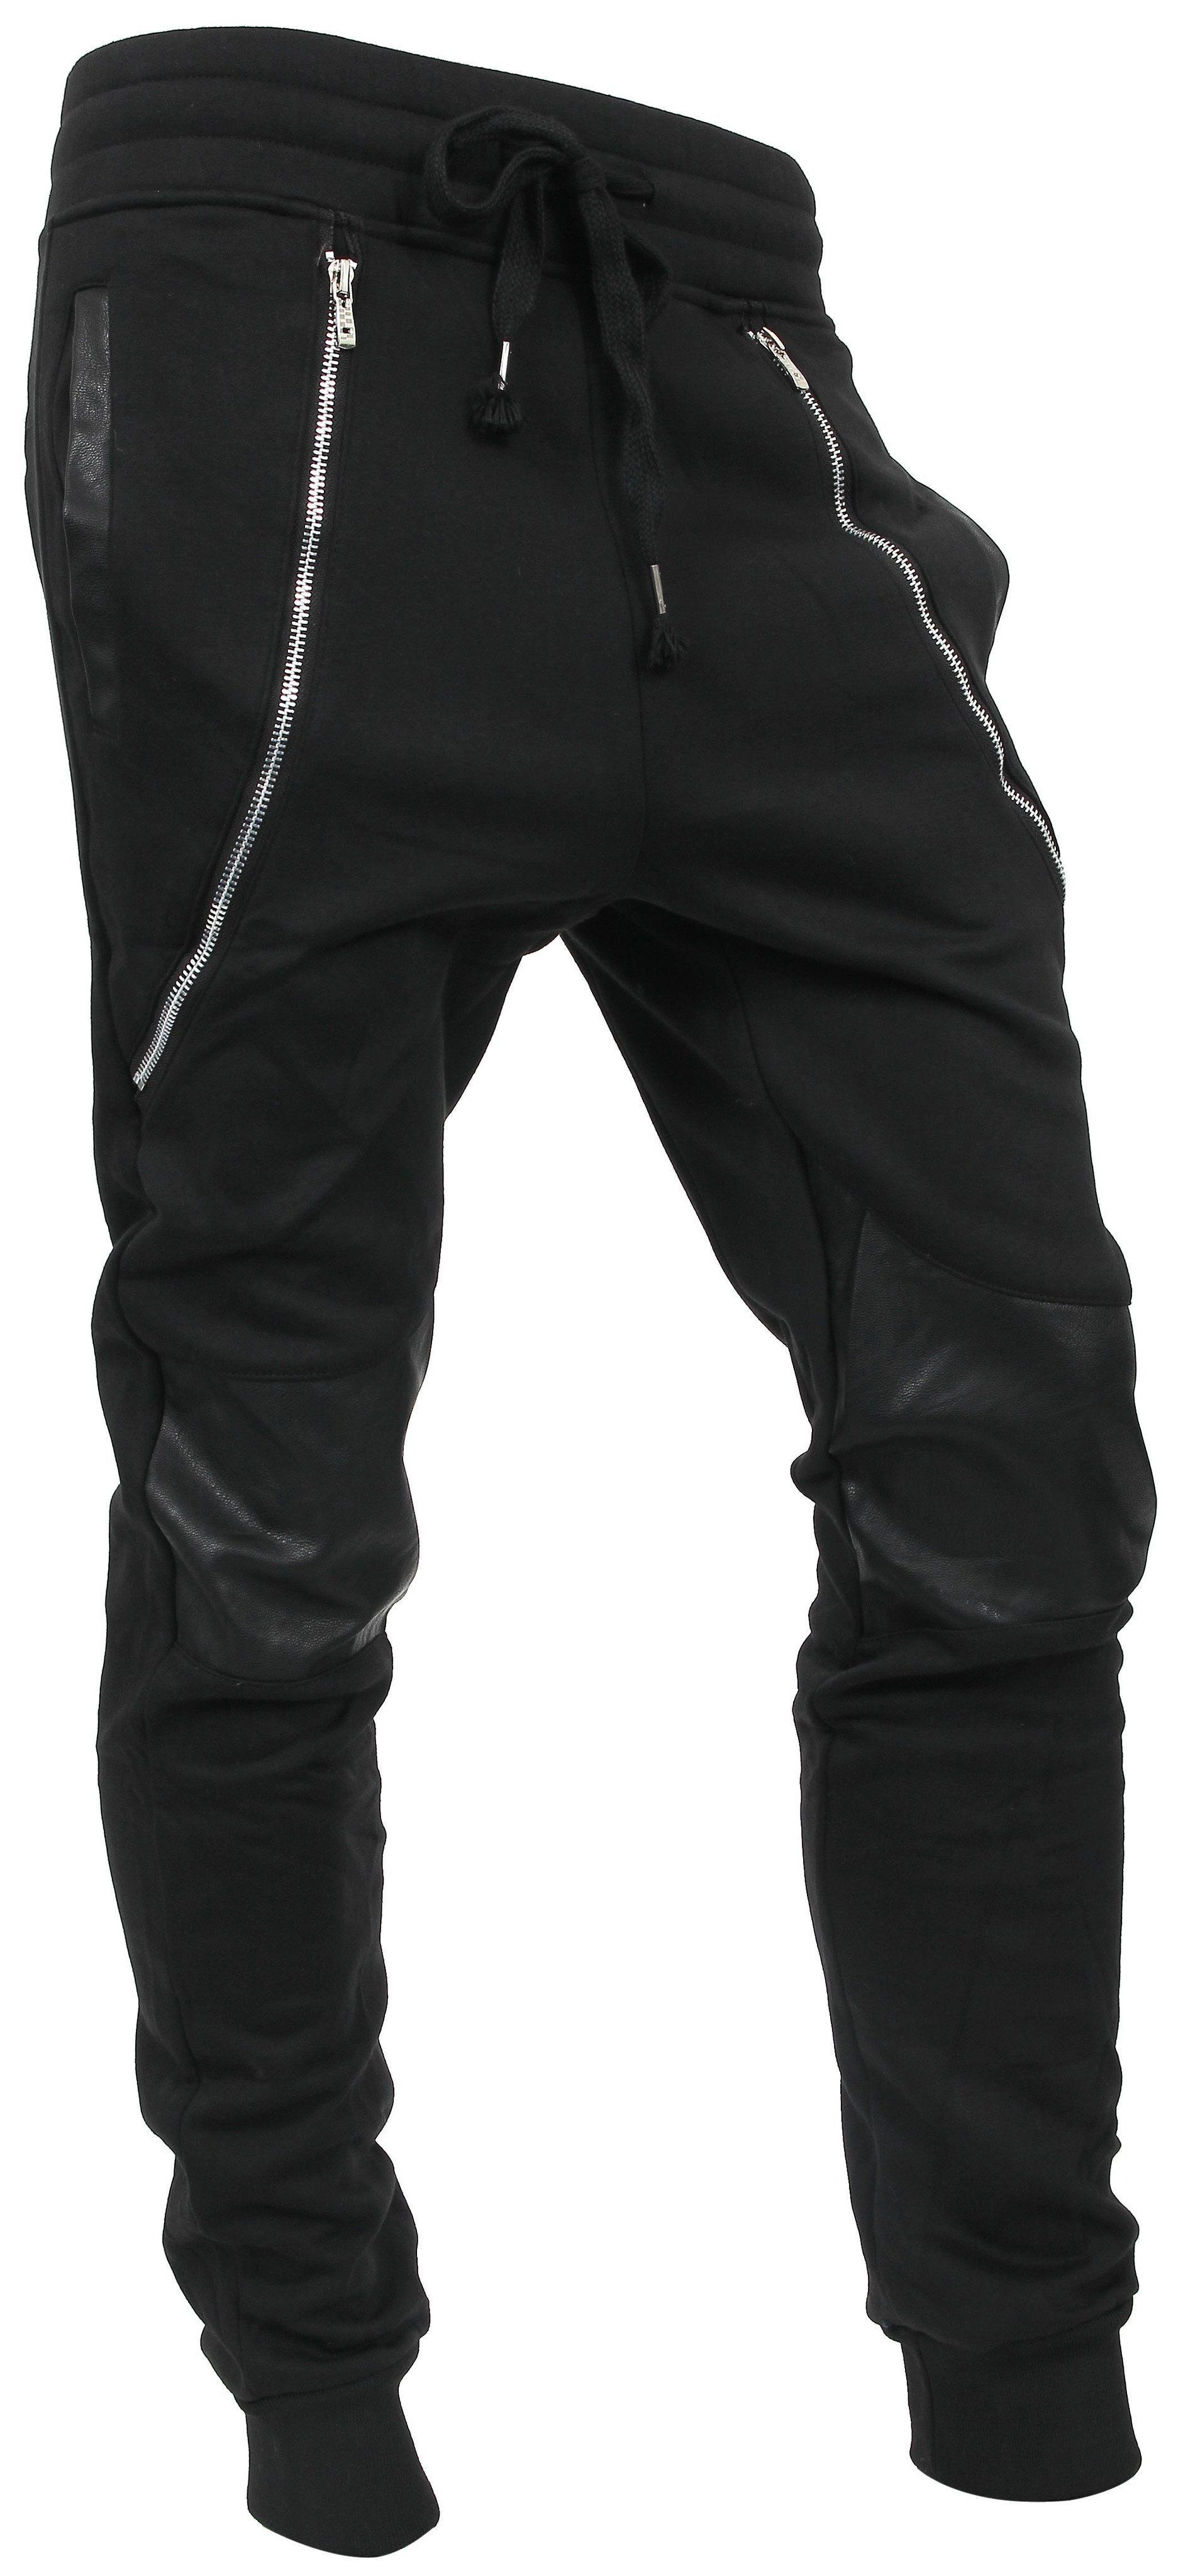 824f025c Joggers- size medium. Doesn't have to be this exact style | для ...